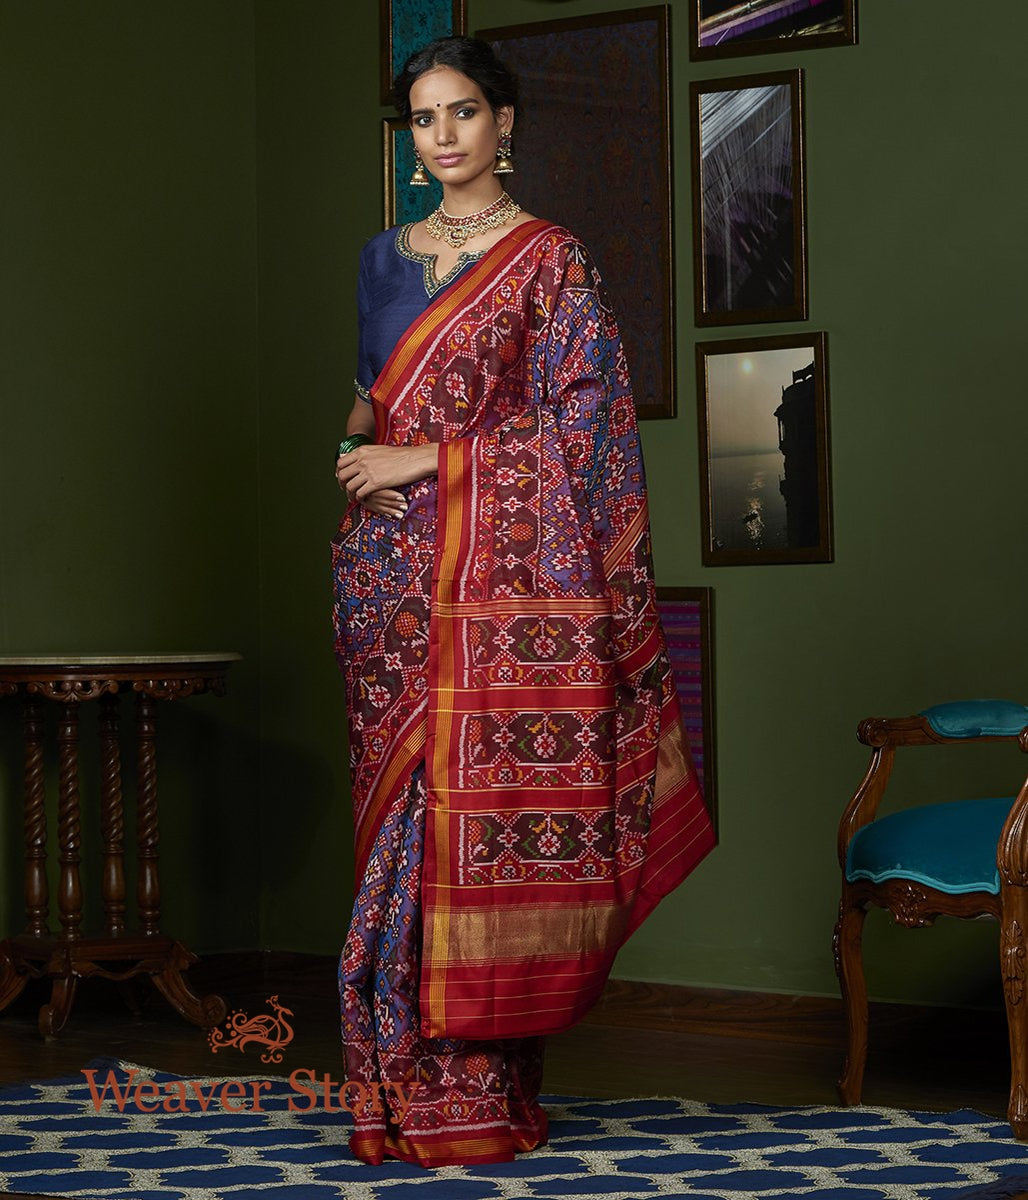 Handwoven Blue and Red Dual Tone Gujarat Patola Saree with Red Border